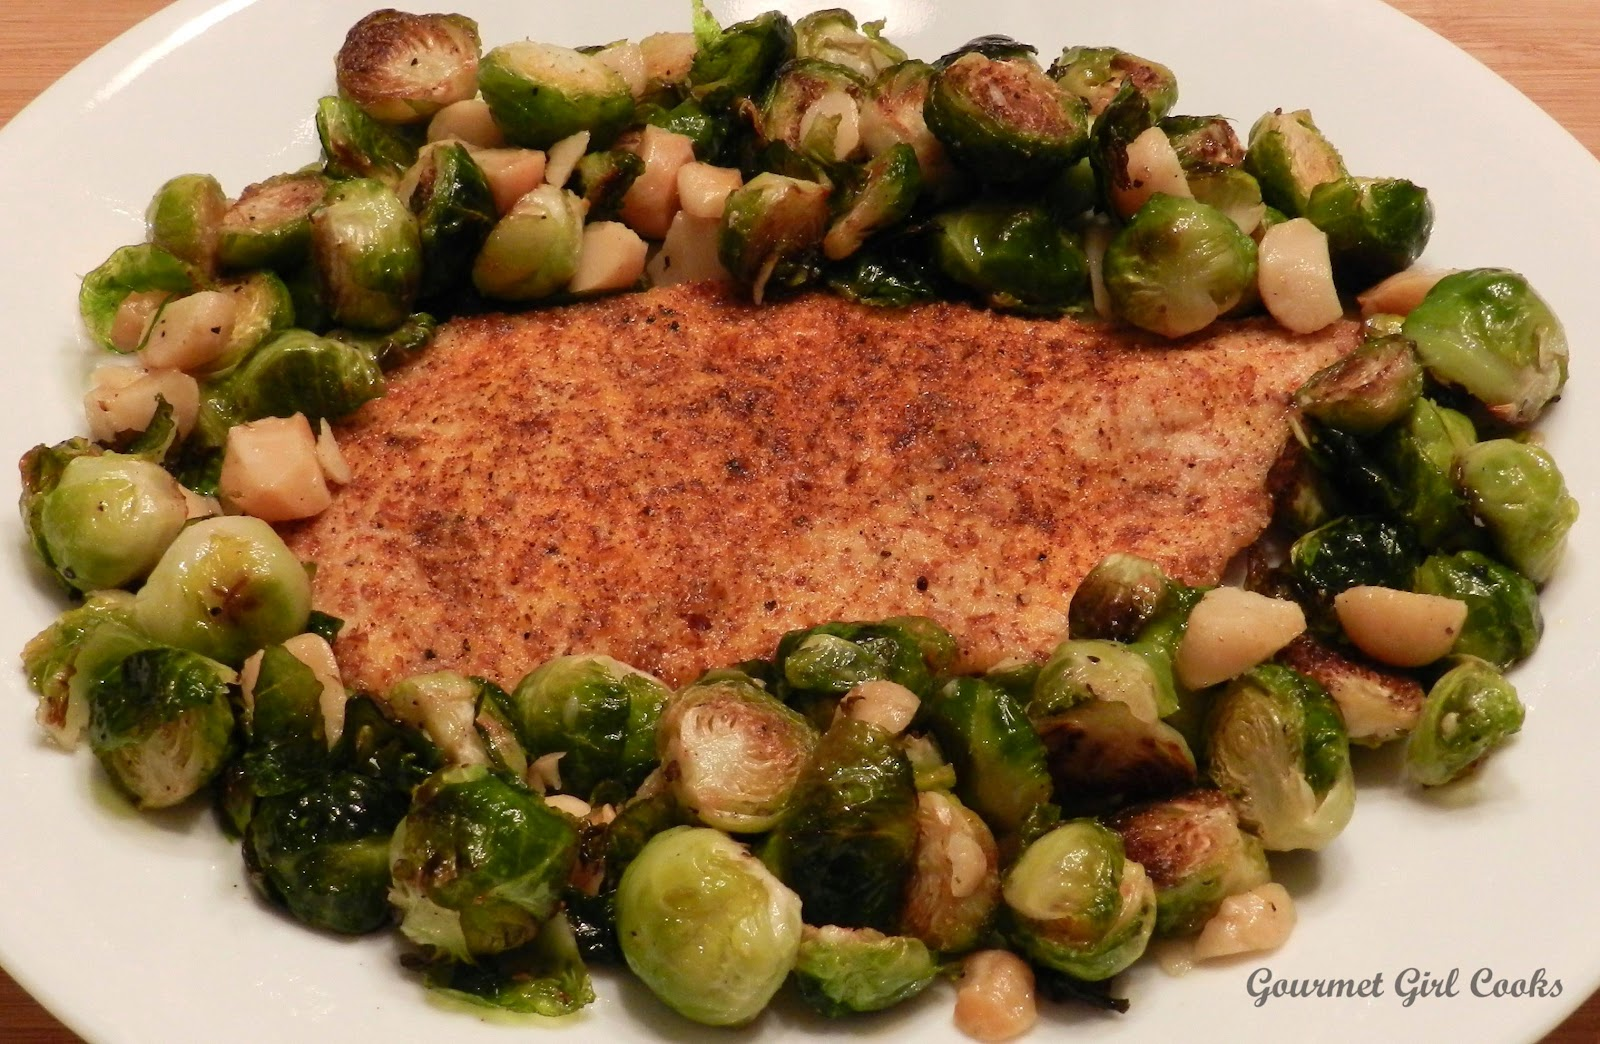 Gourmet Girl Cooks: Roasted Brussels Sprouts w/ Macadamia Nuts